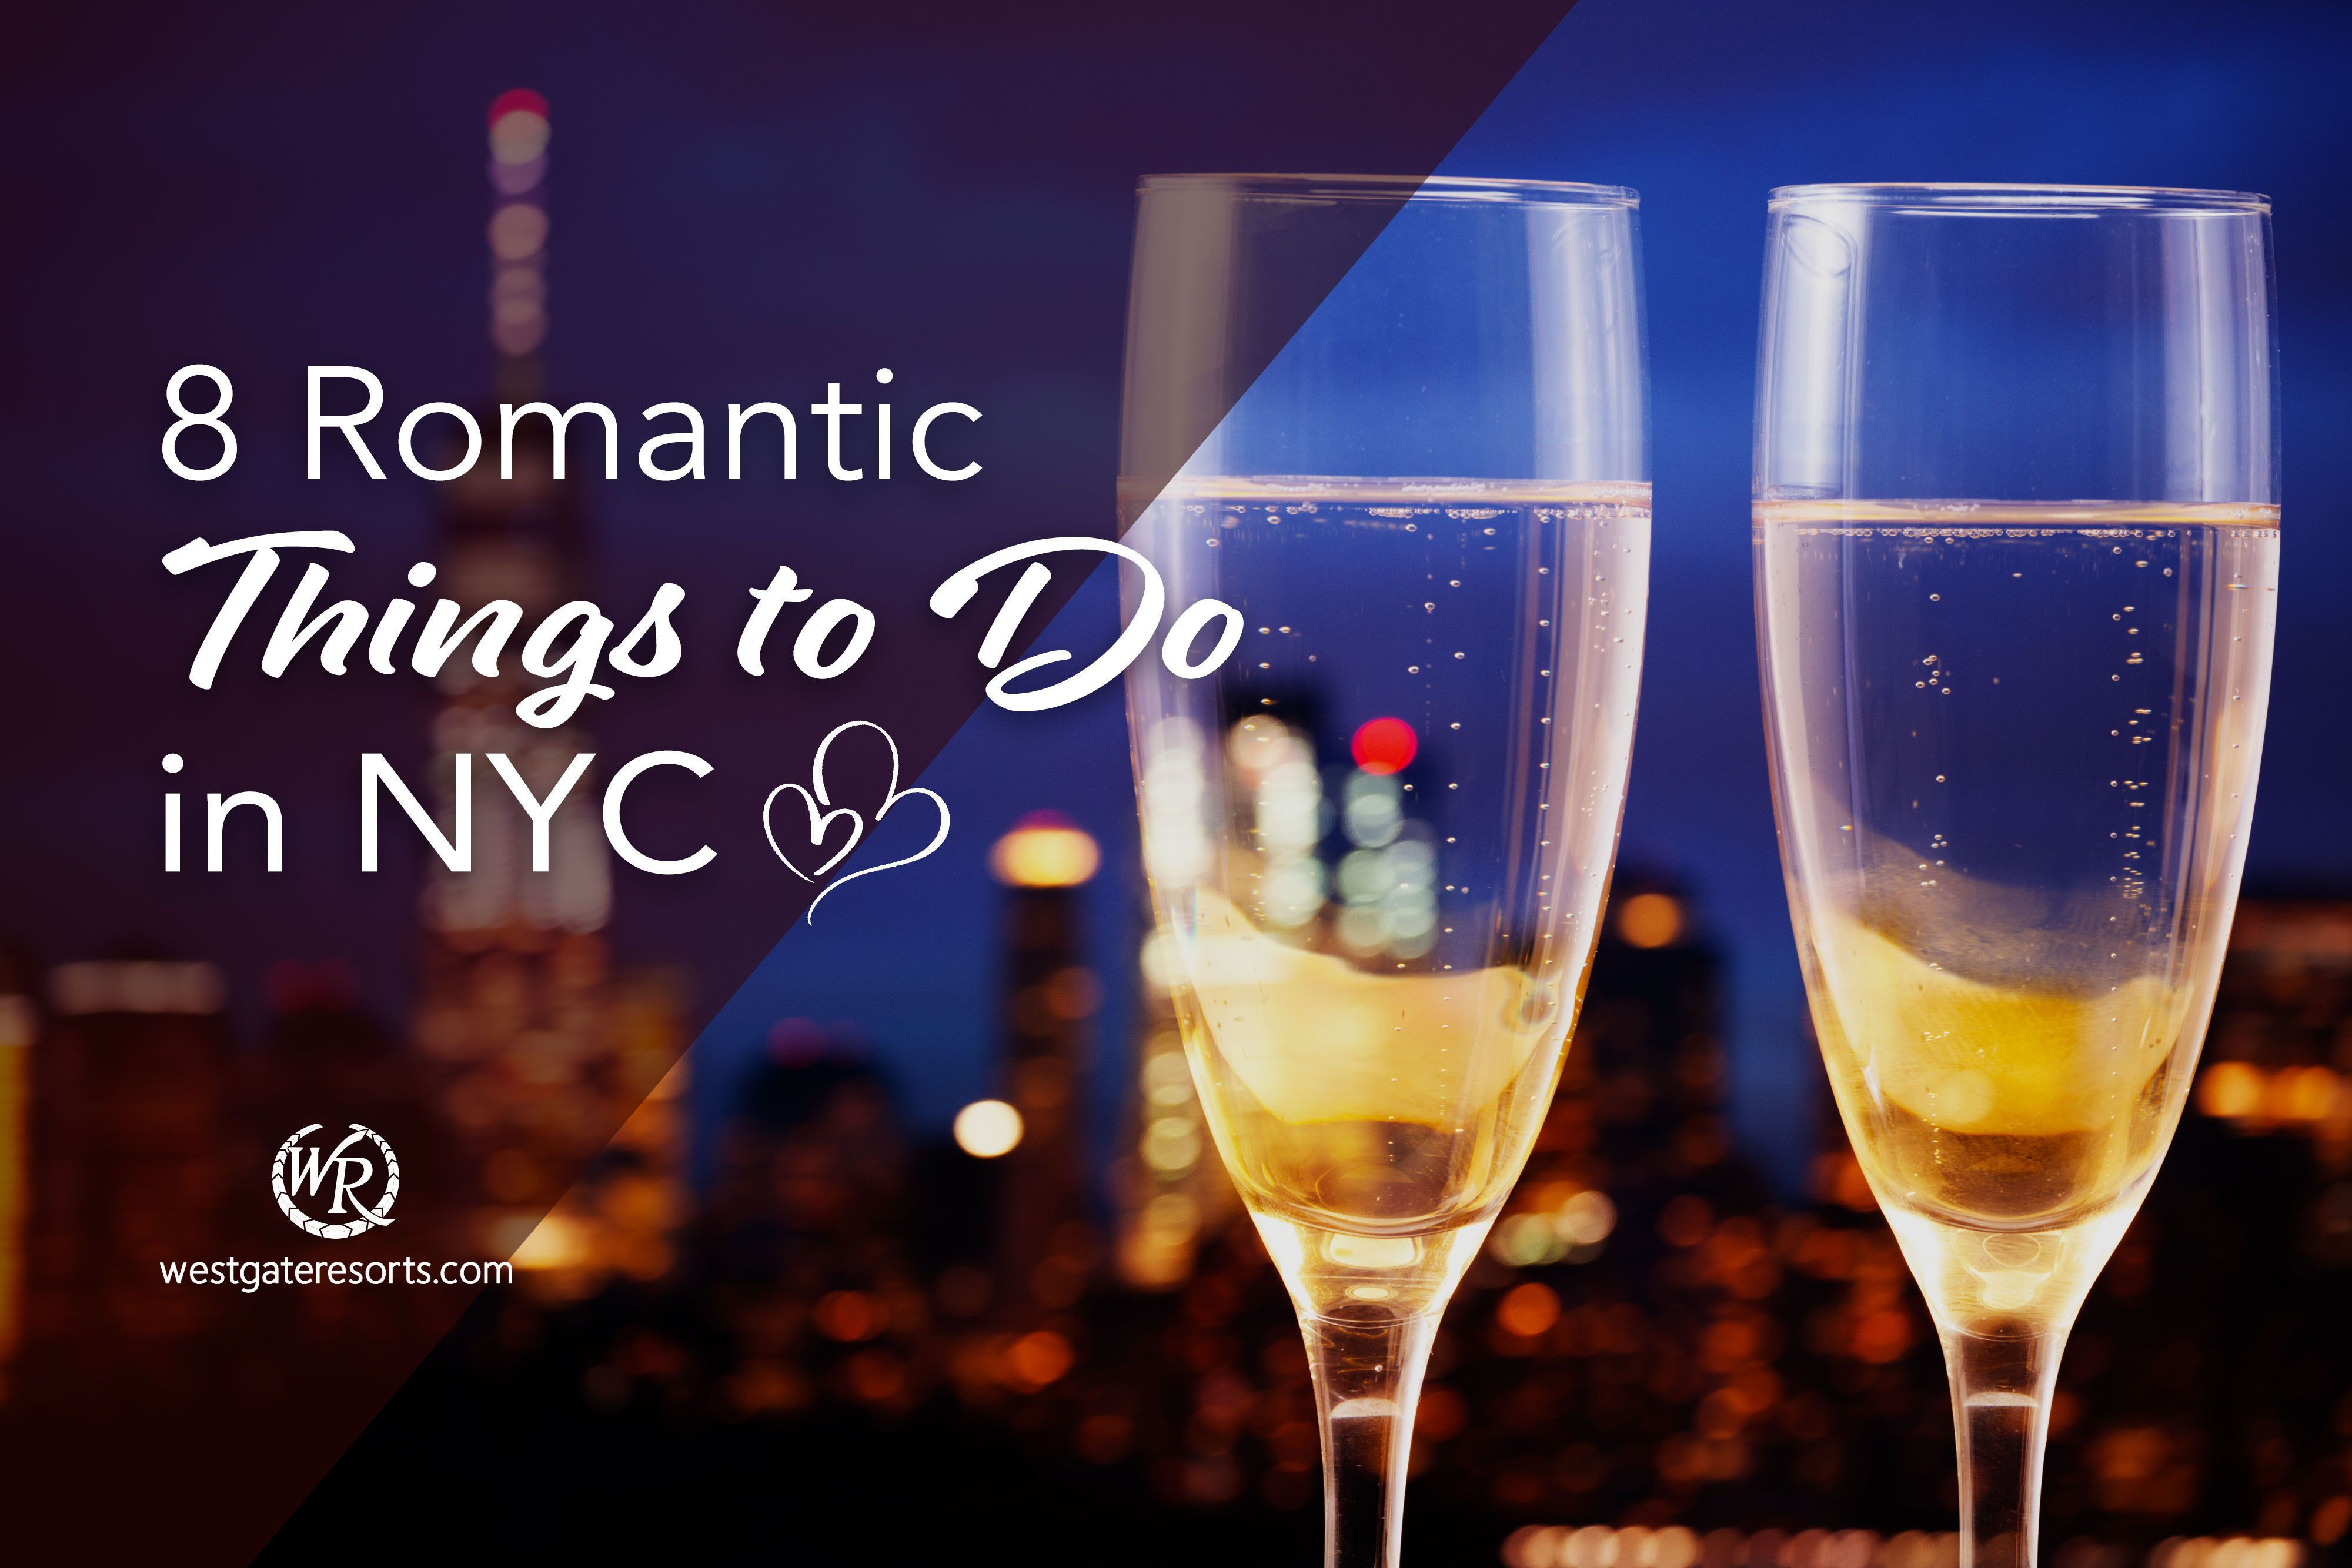 8 Romantic Things to Do in NYC